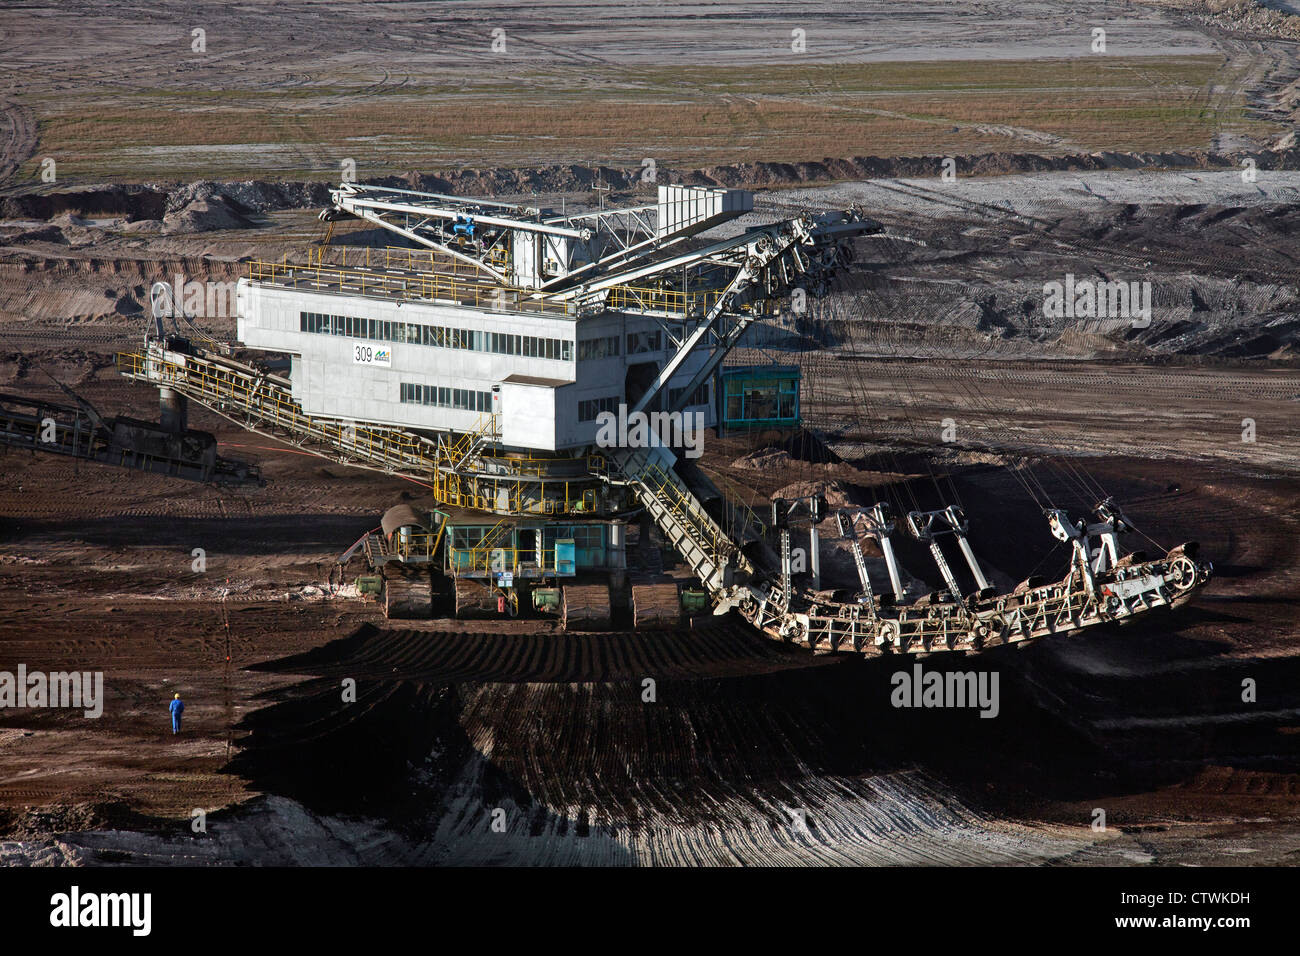 Brown coal / lignite being extracted by huge bucket-wheel excavator at open-pit mine, Saxony-Anhalt, Germany - Stock Image